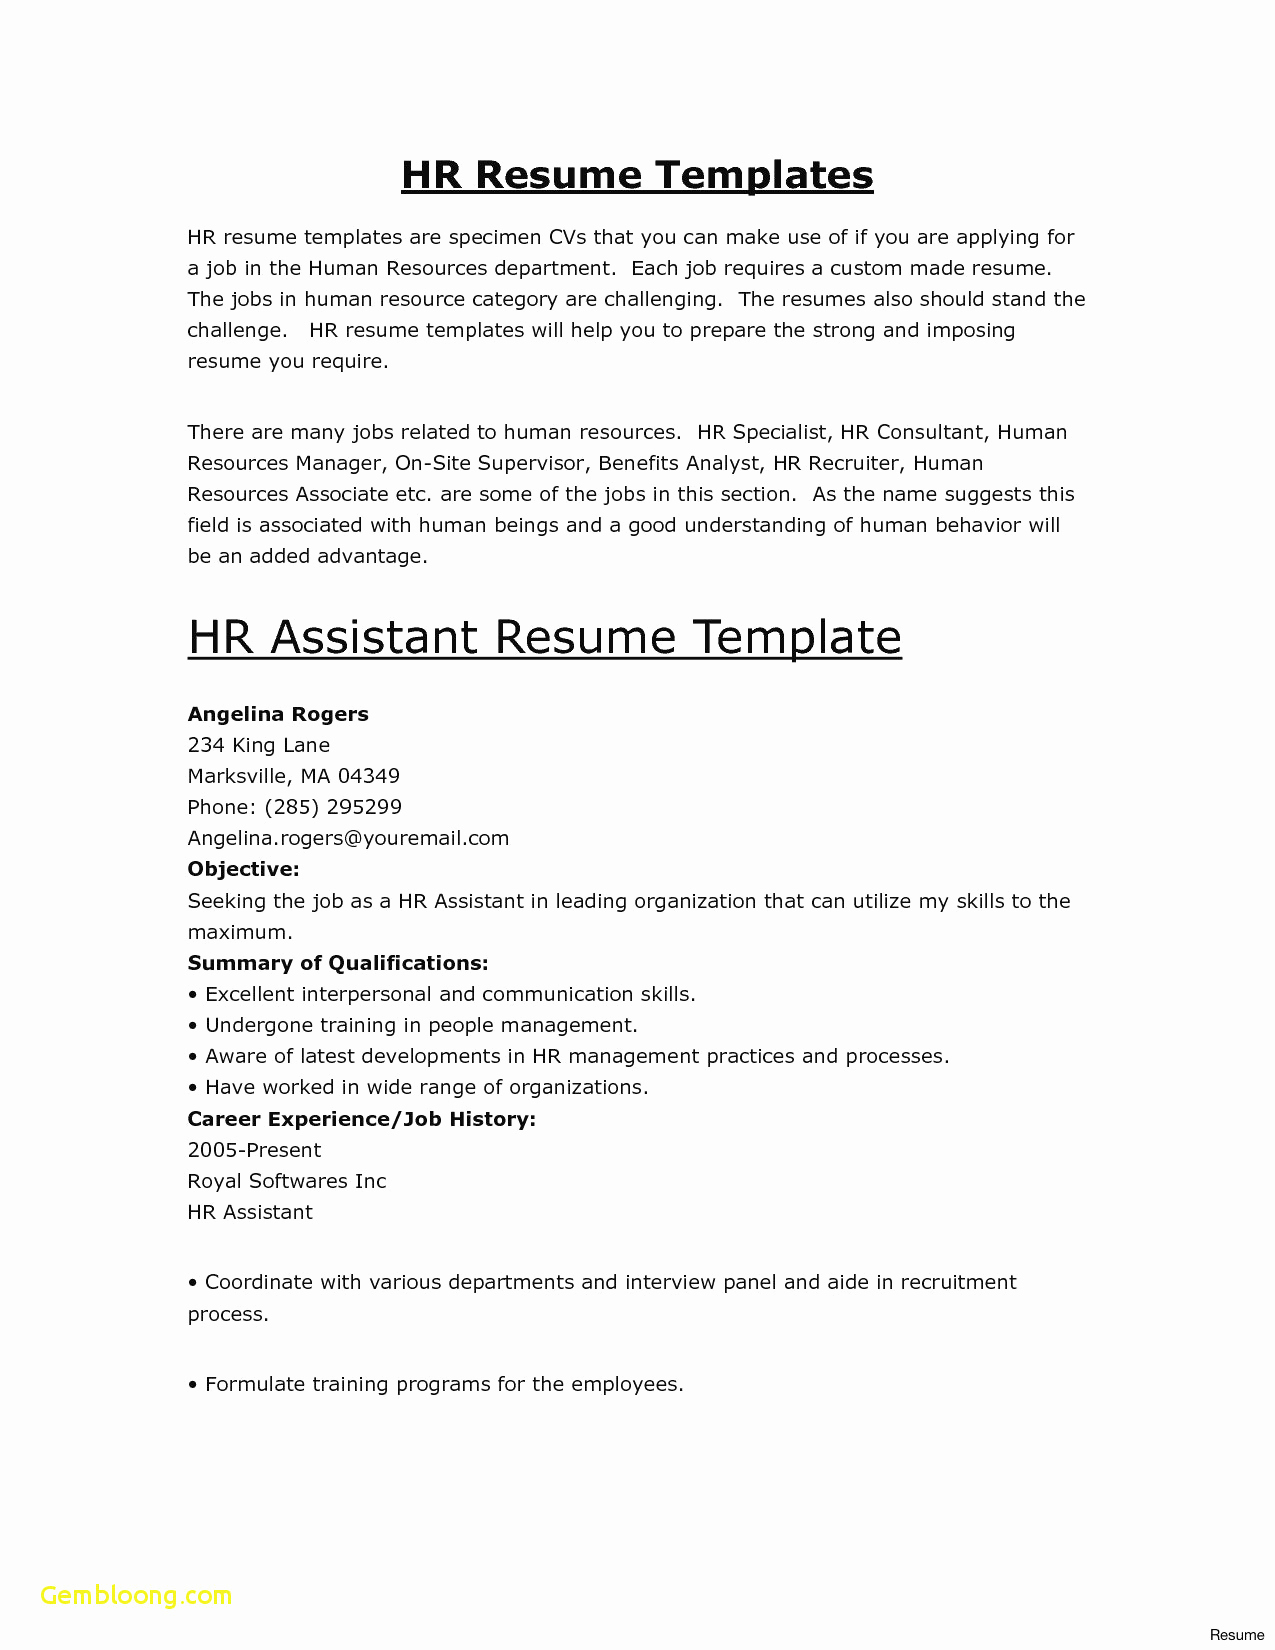 Special Education Resume - Special Education Teacher assistant Resume Student Teaching Resume